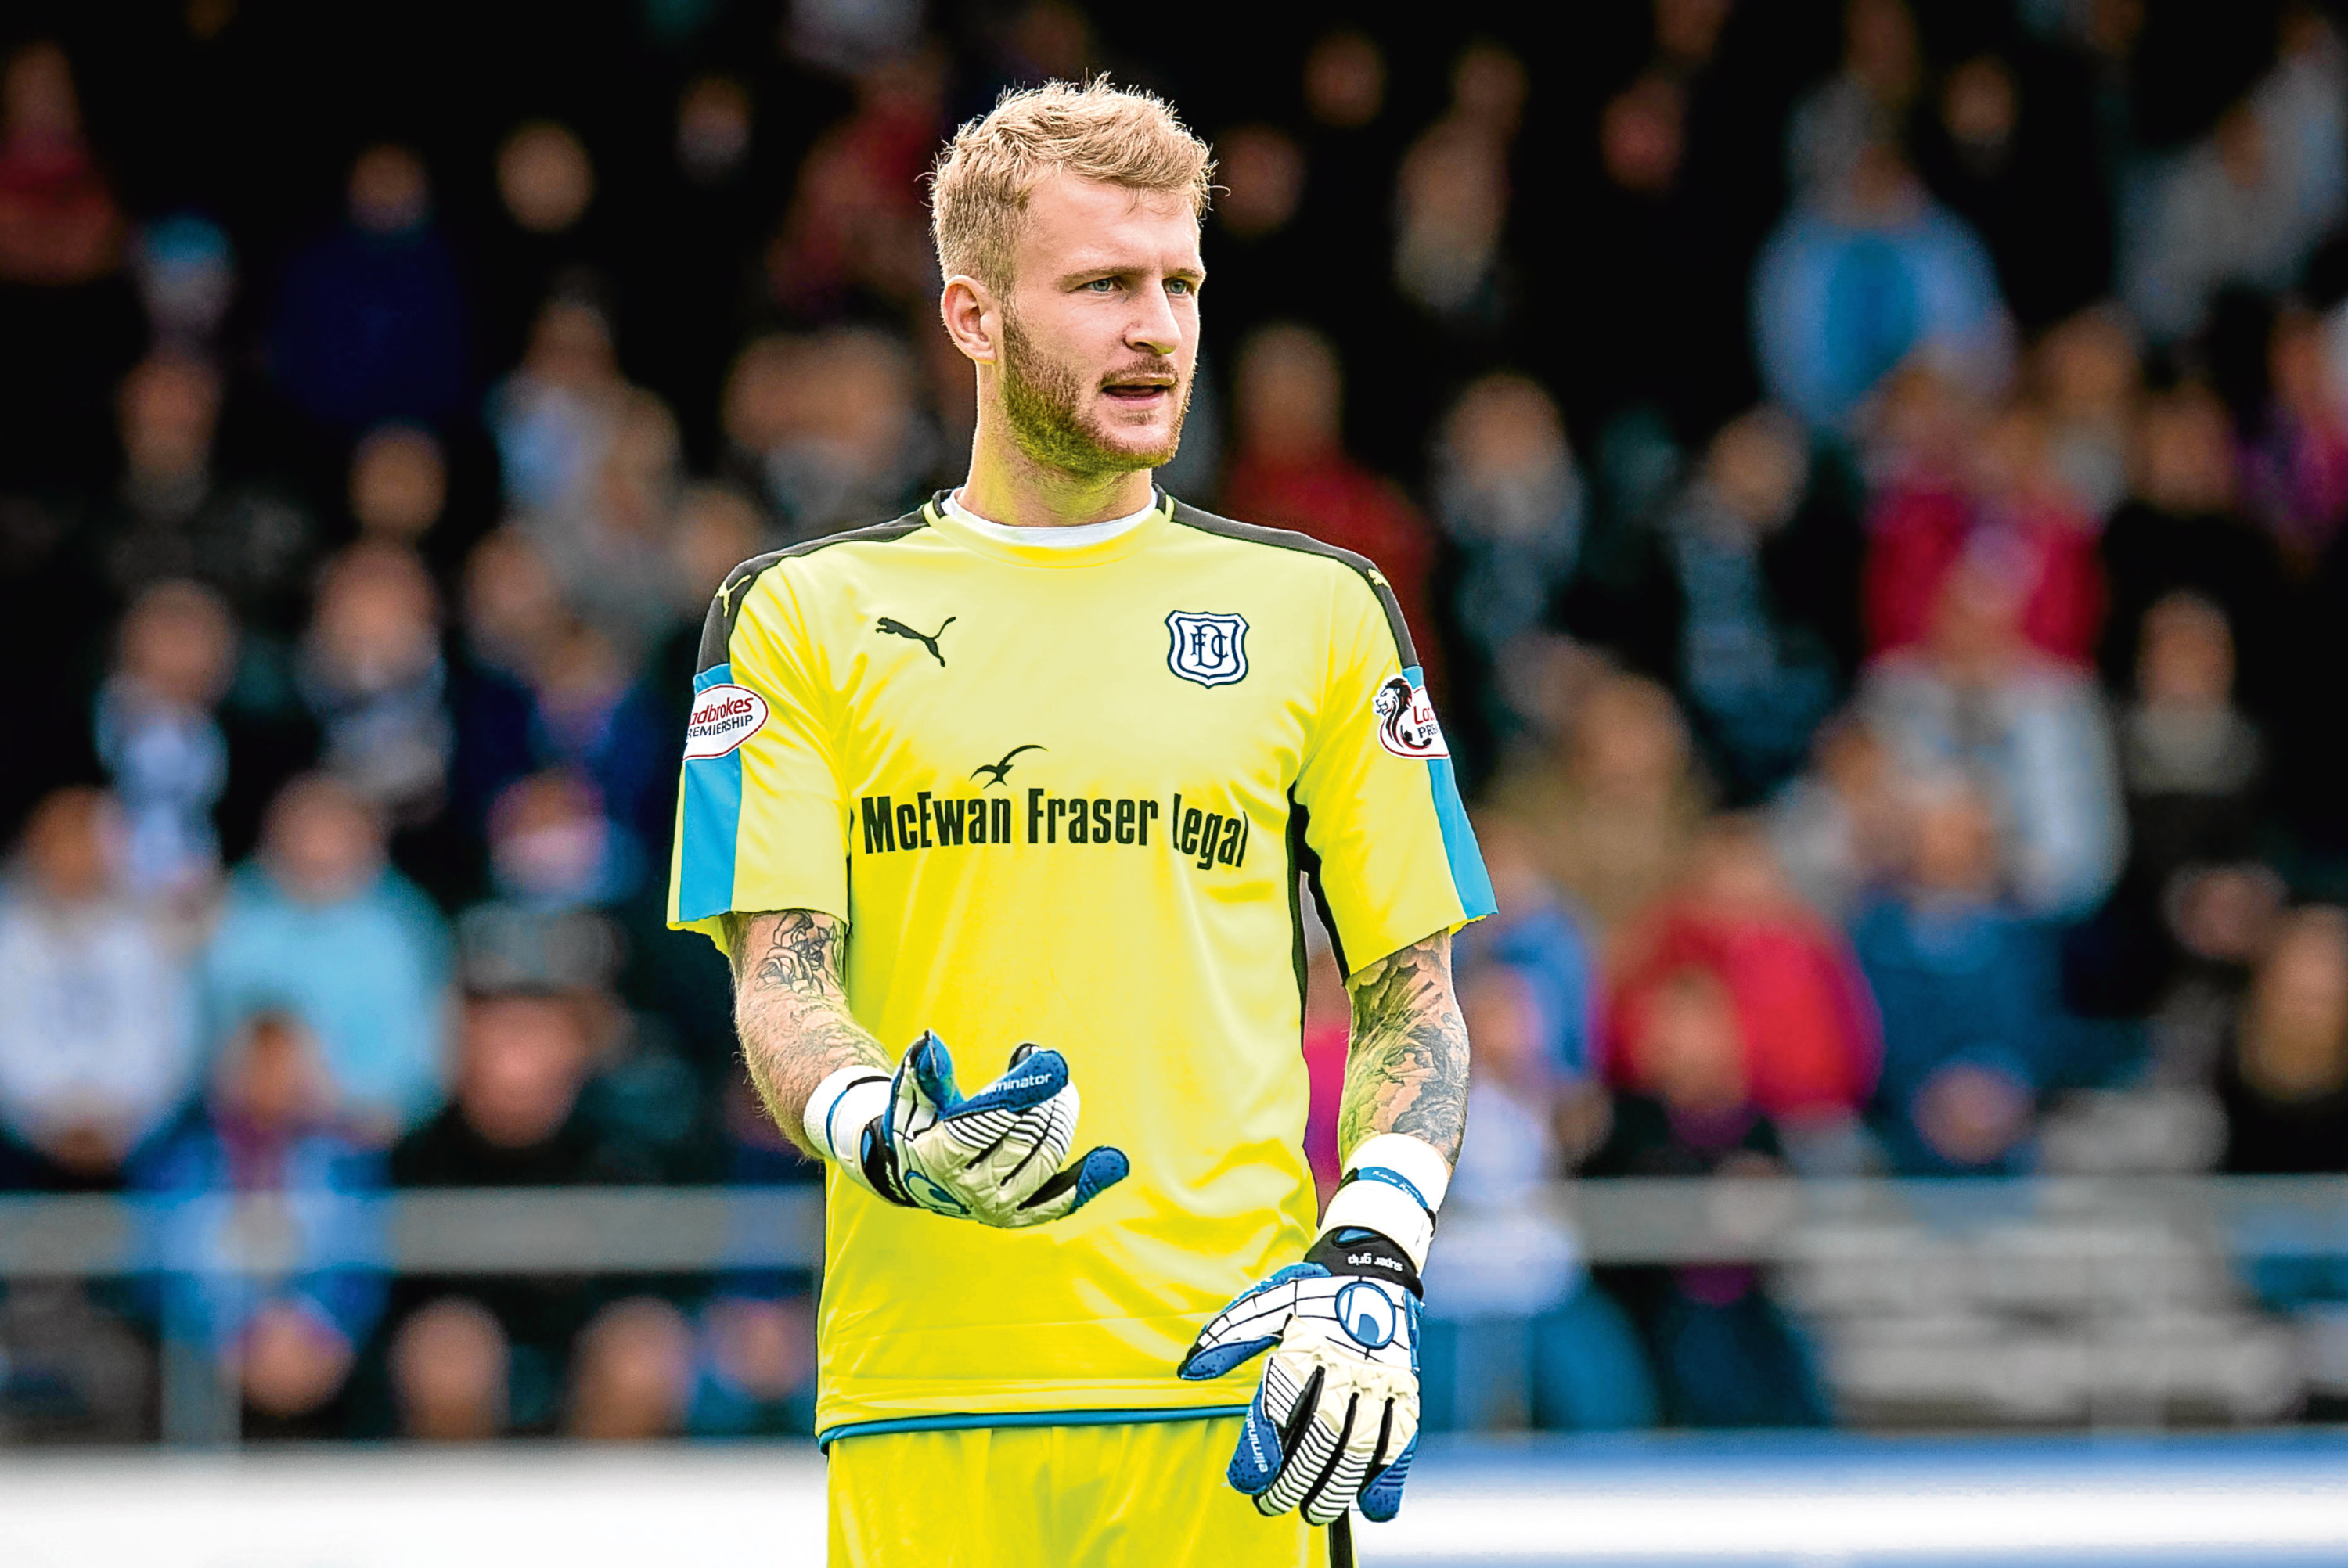 Dundee keeper Scott Bain was in the starting XI at the weekend after coming back from injury.